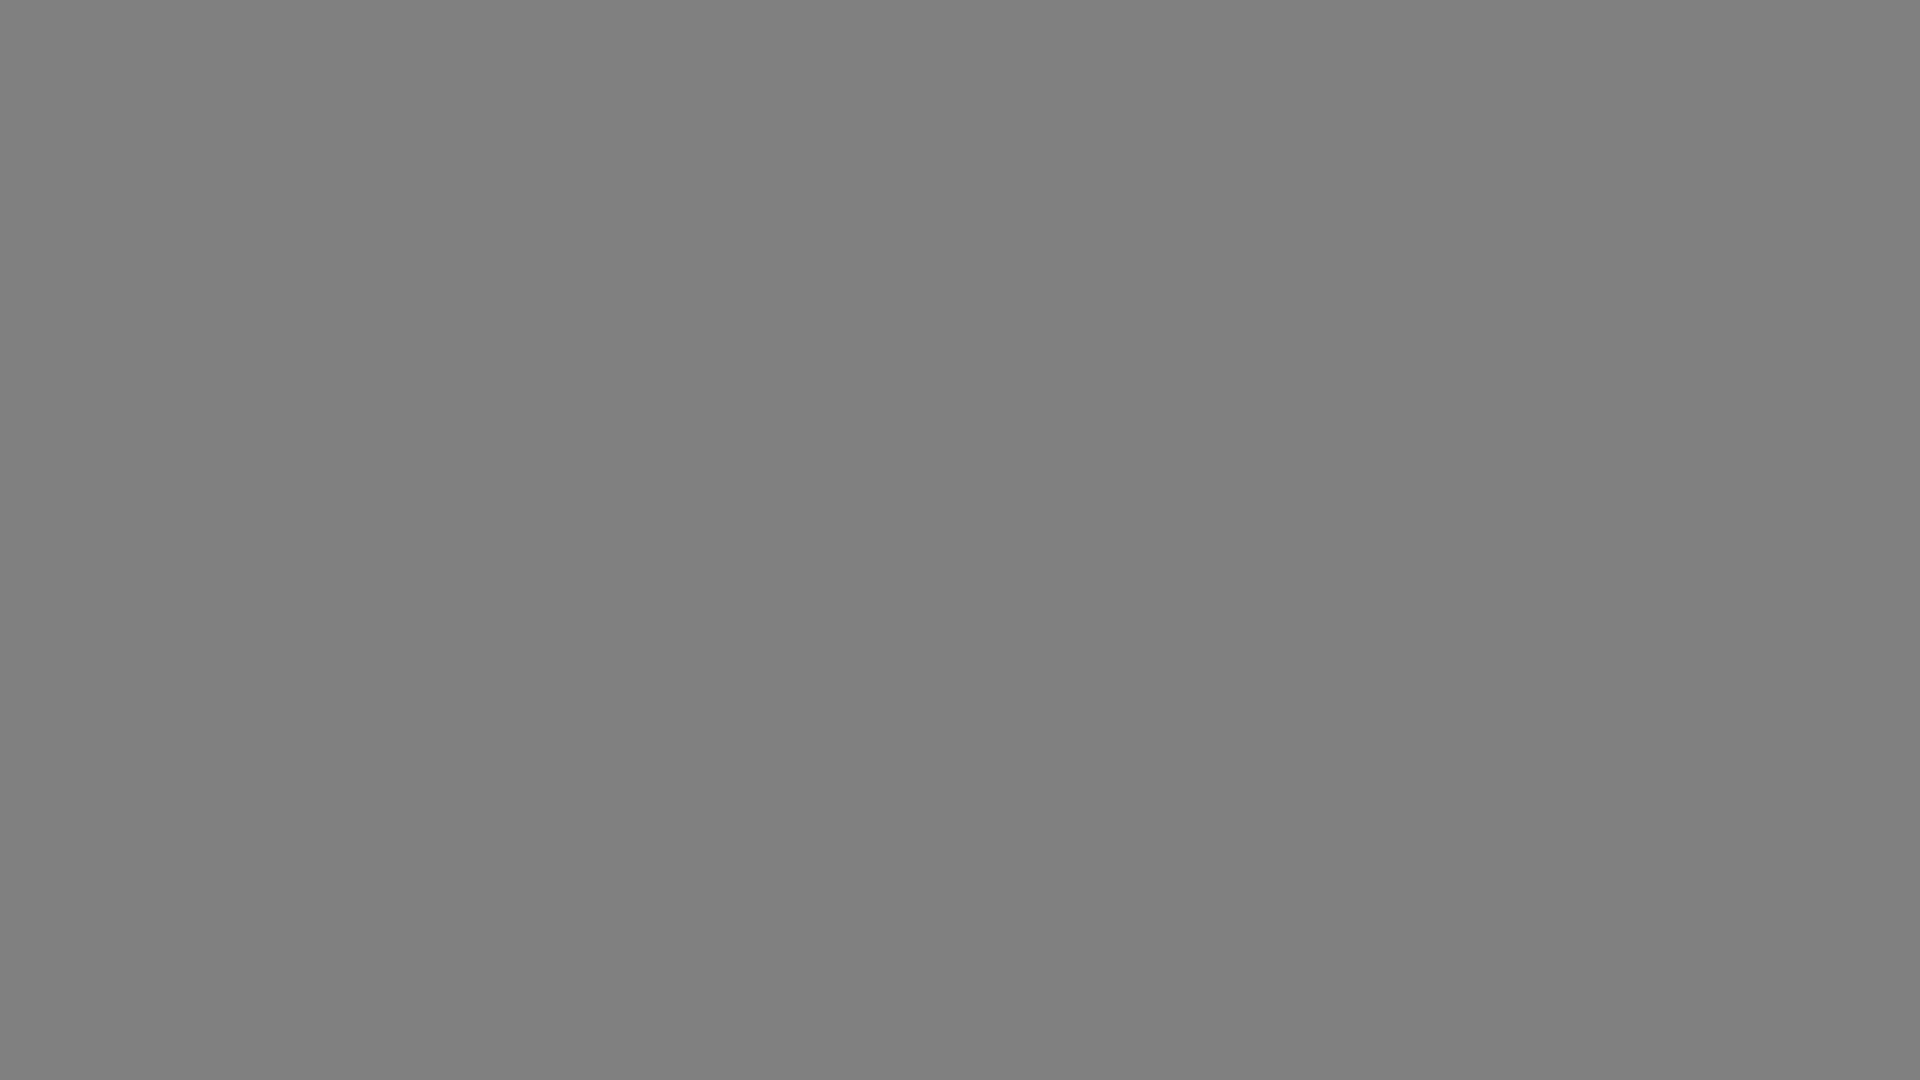 1920x1080 Trolley Grey Solid Color Background